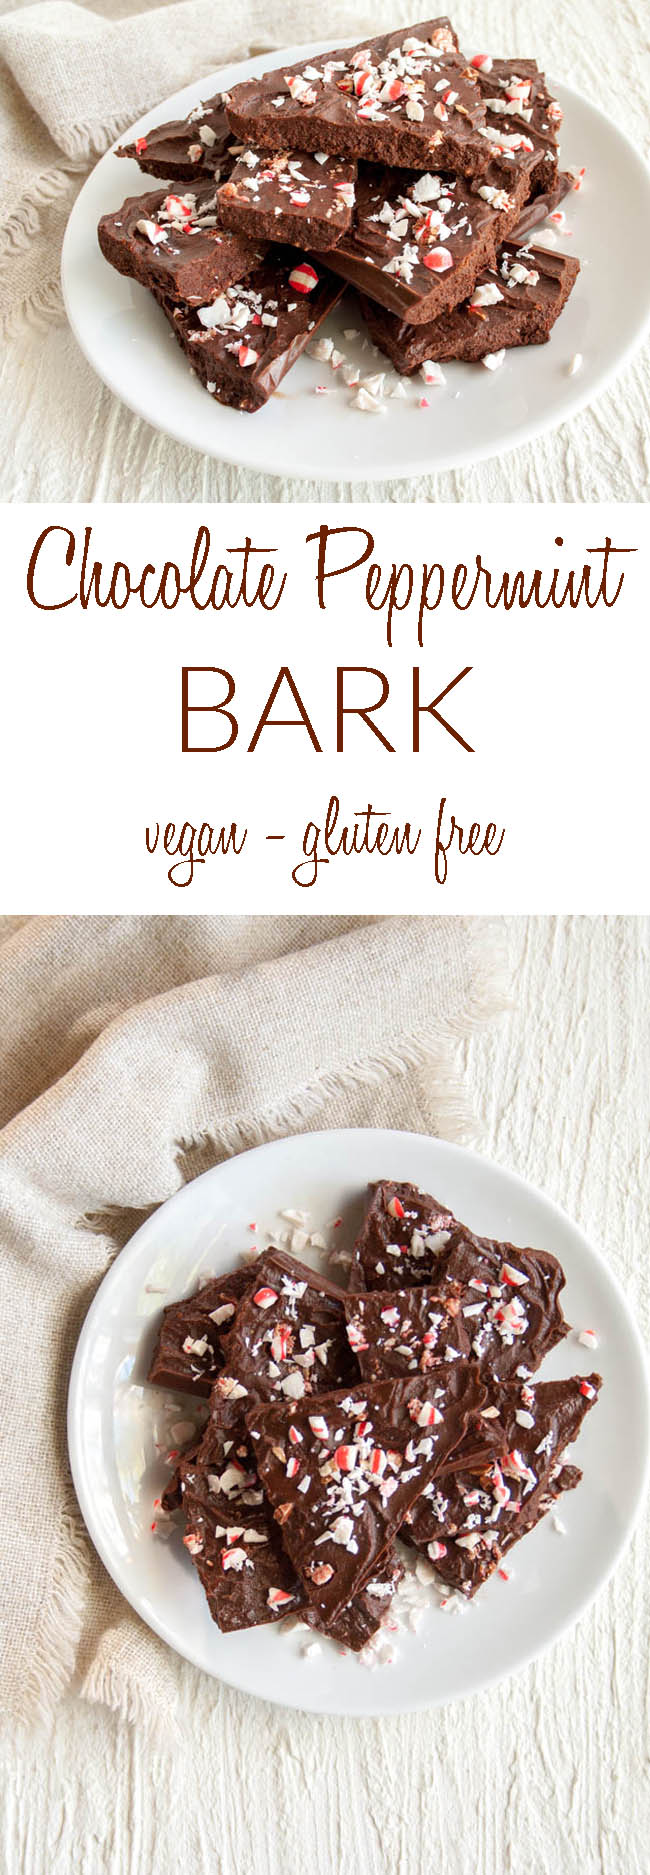 Vegan Chocolate Peppermint Bark collage photo with text.